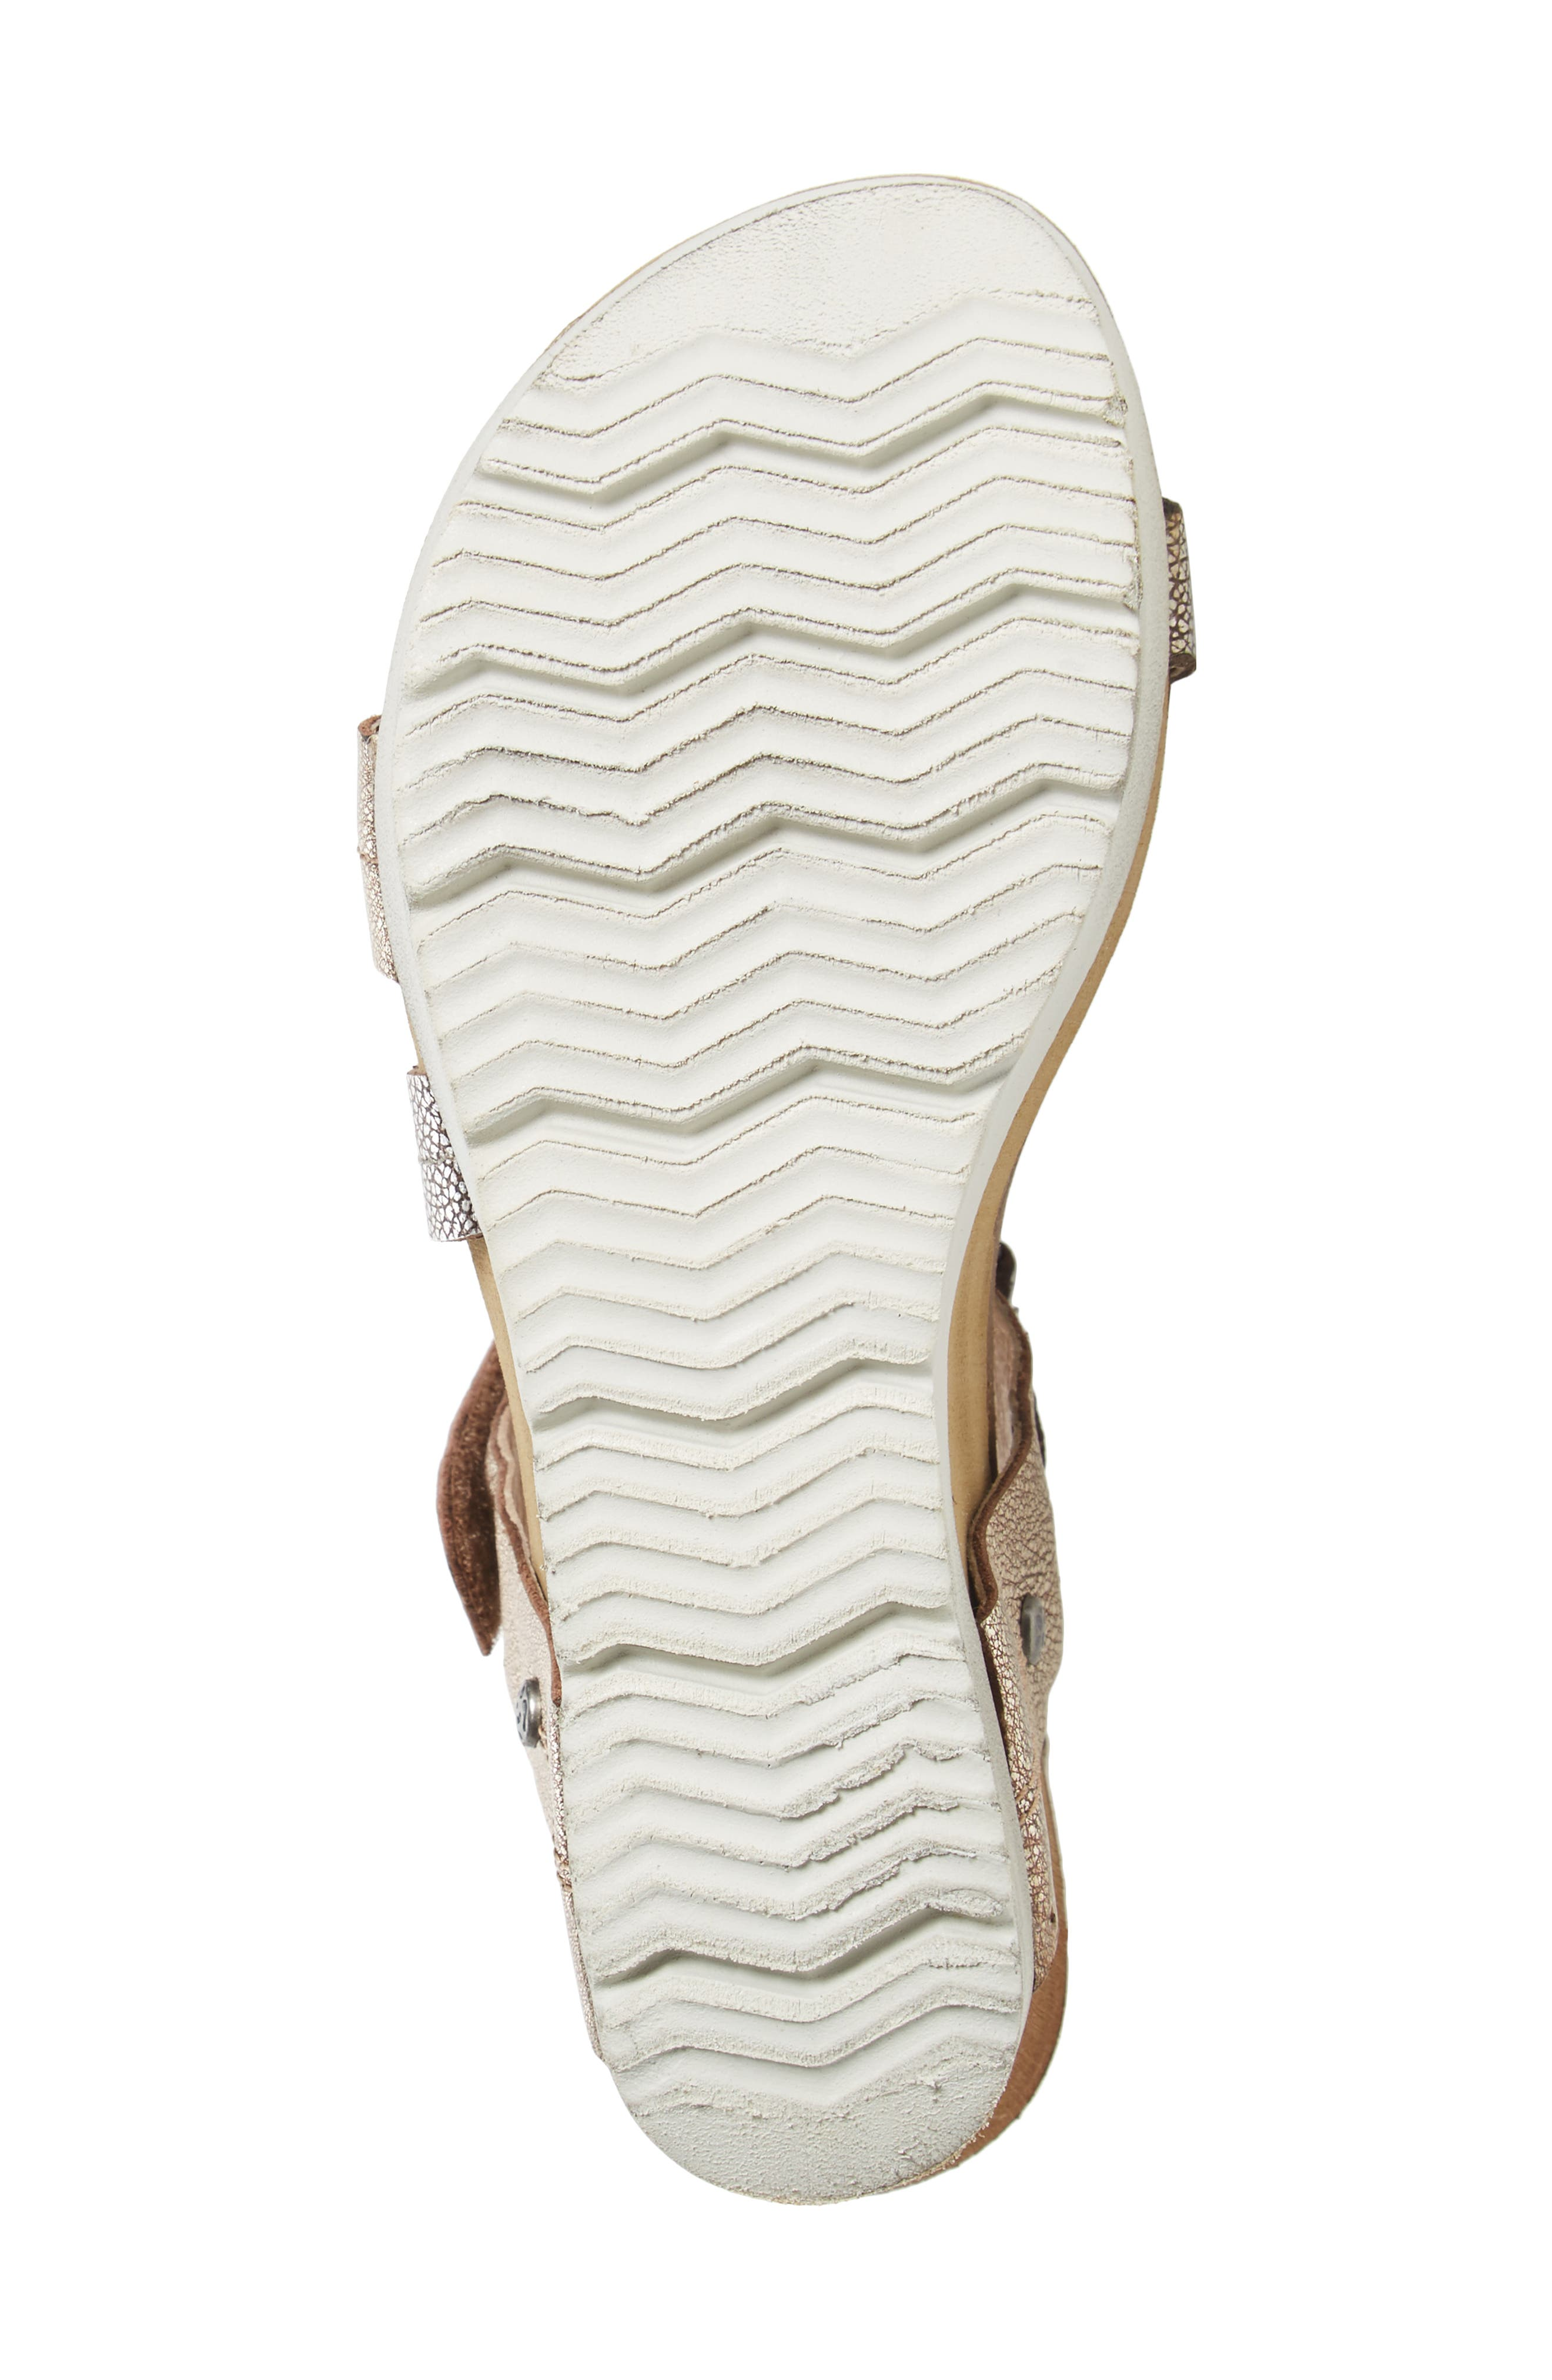 Wavey Wedge Sandal,                             Alternate thumbnail 4, color,                             Gold Leather